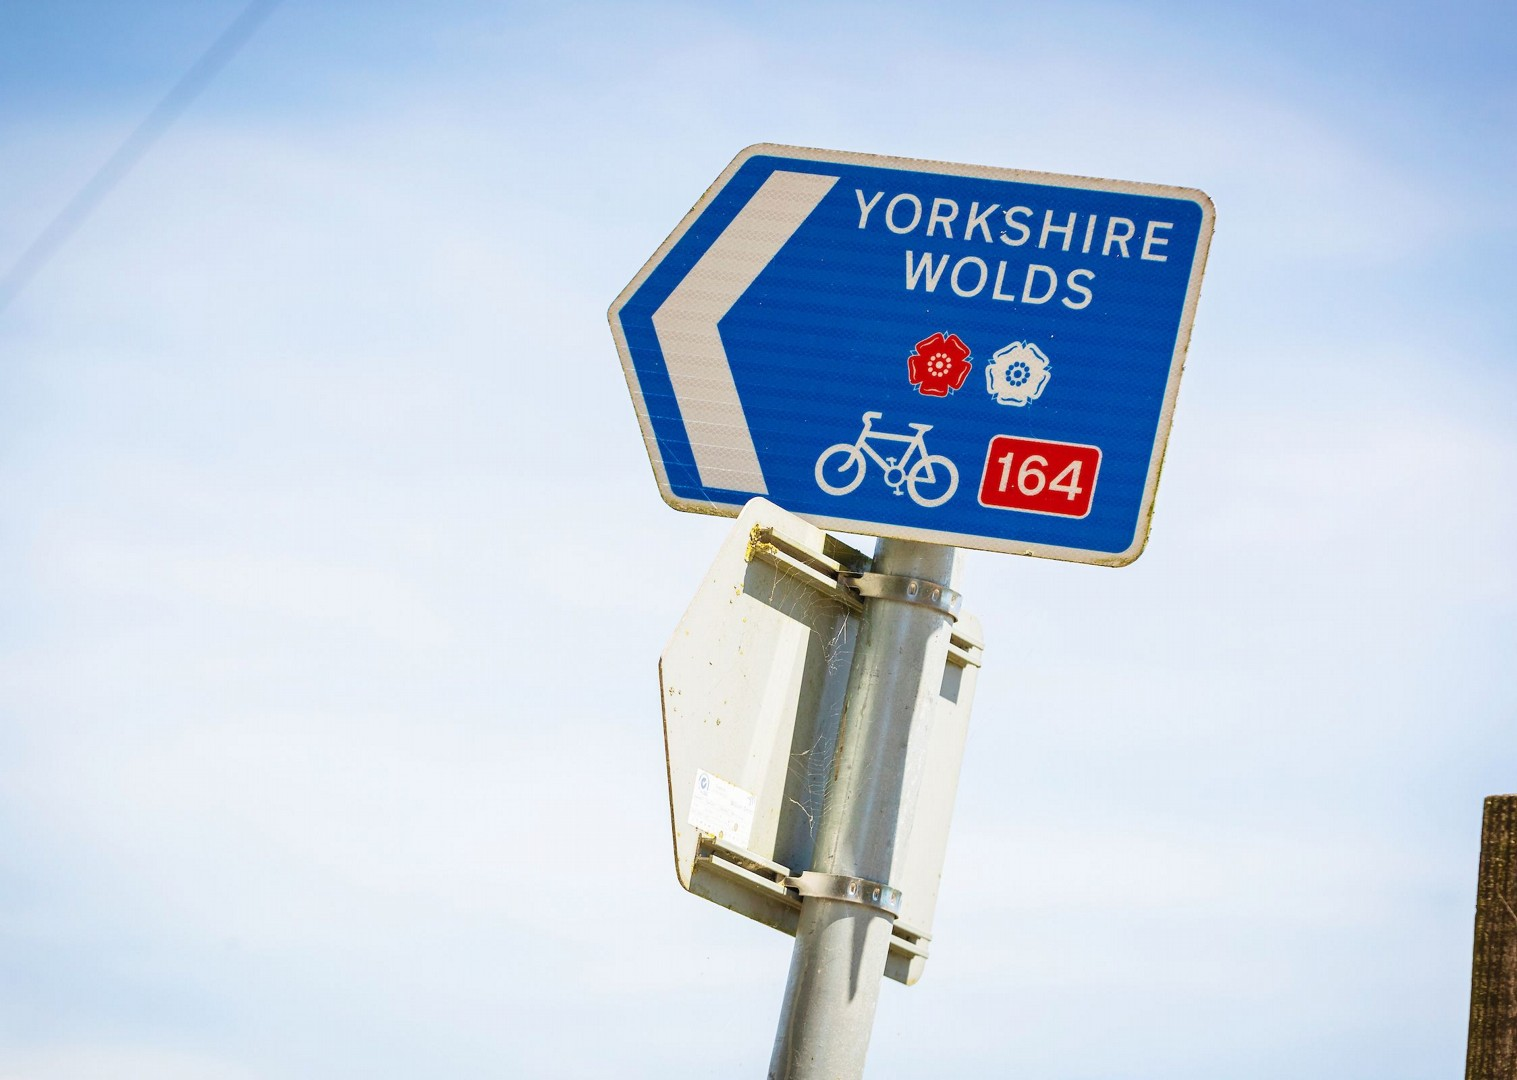 cycling-yorkshire-well-signposted-historical-villages-cycle-tracks.jpg - NEW! UK - Yorkshire Wolds - Leisure Cycling